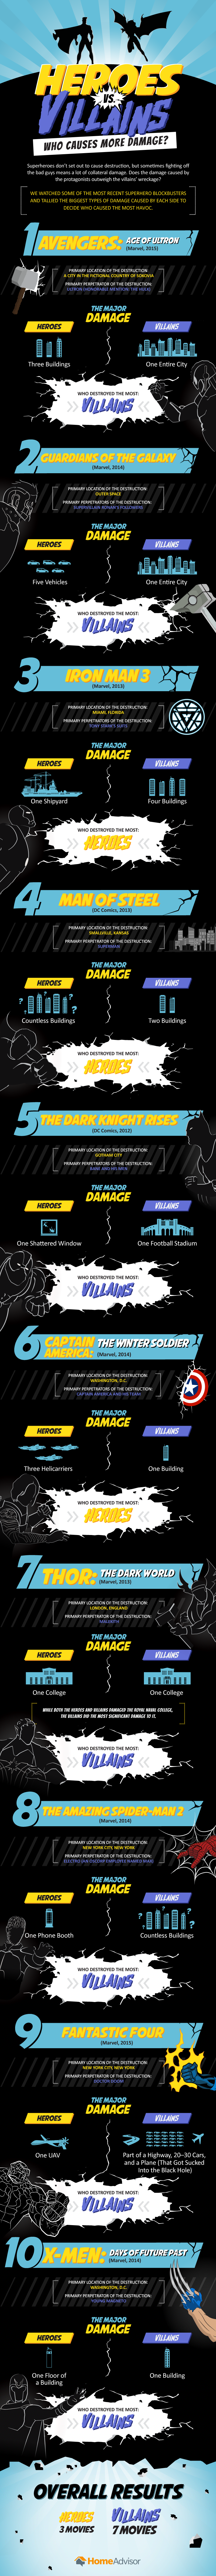 Who causes more destruction in superhero movies, heroes or villains?